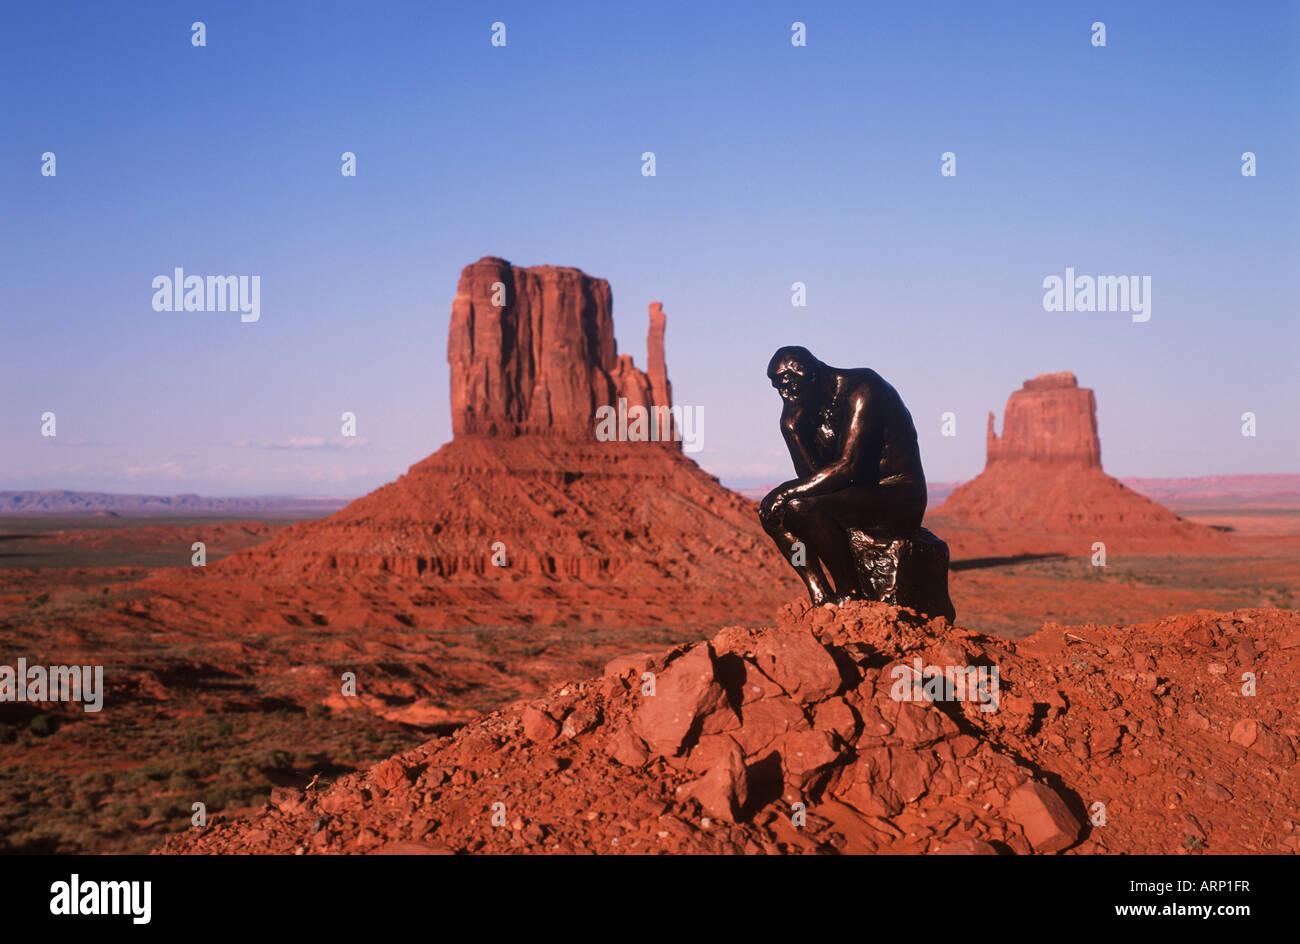 USA, Utah, Monument Valley with 'thinker' statue - Stock Image